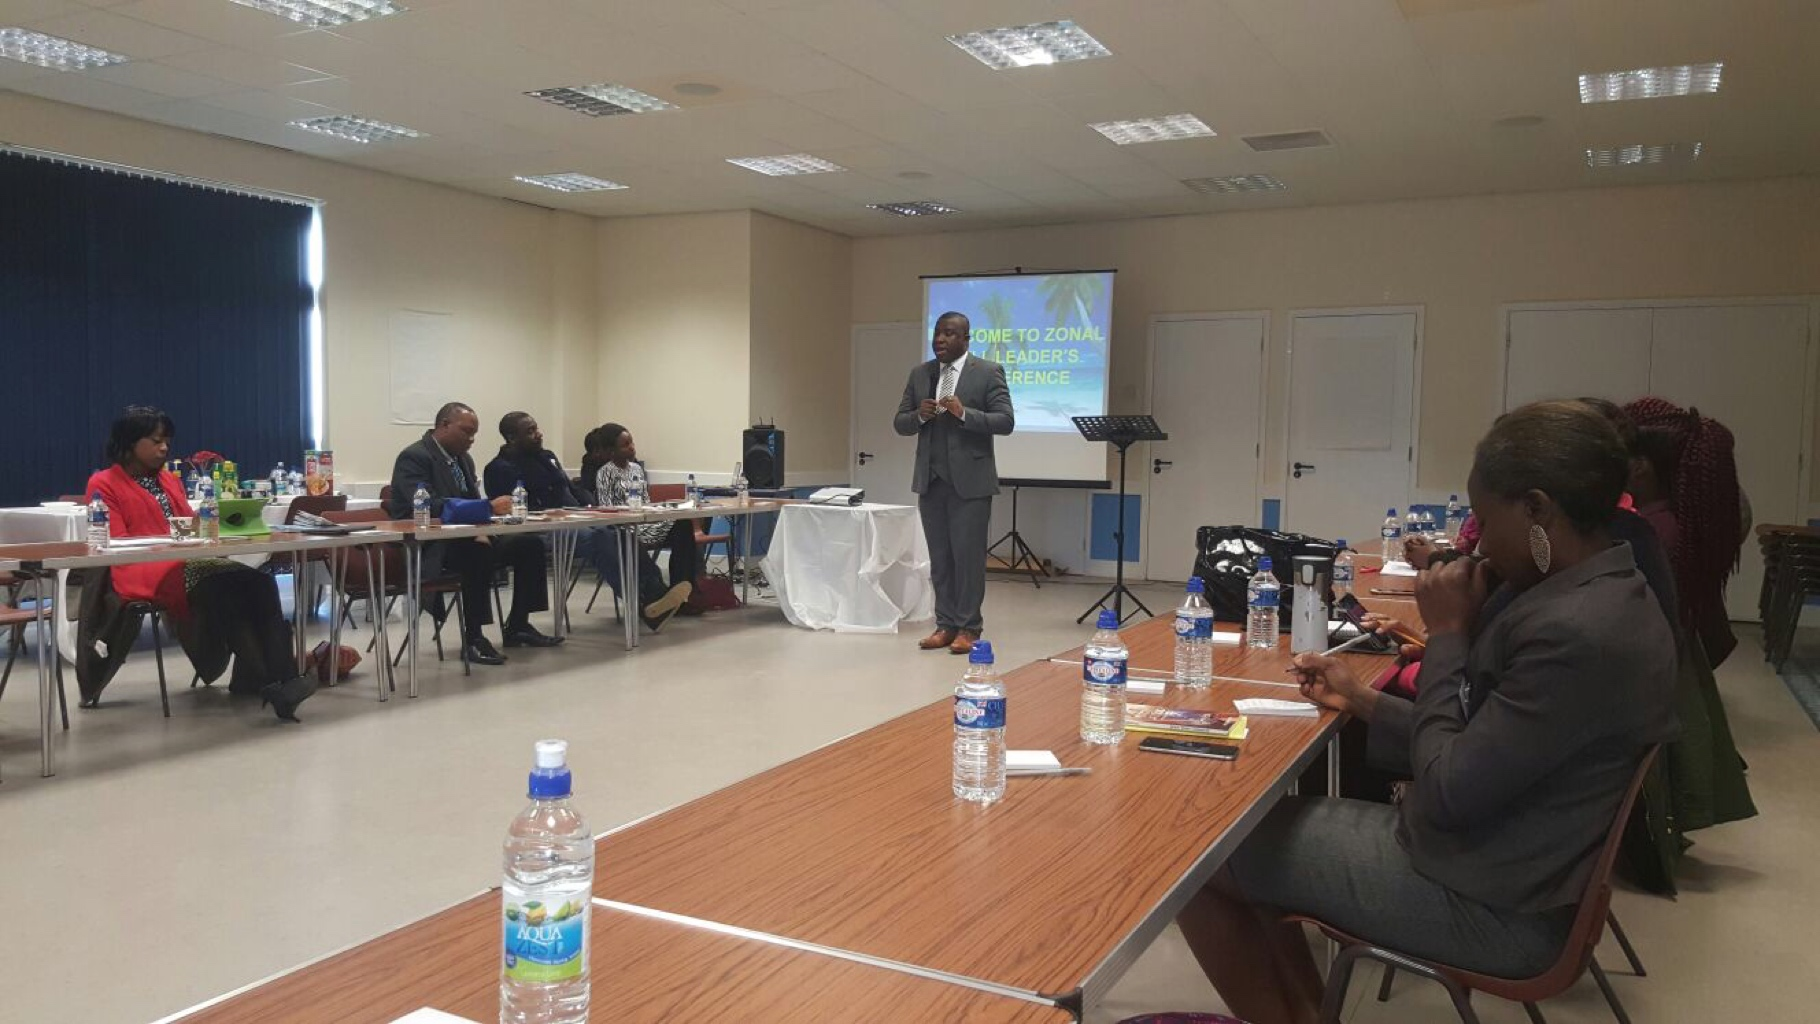 Leaders listen attentively as Pastor